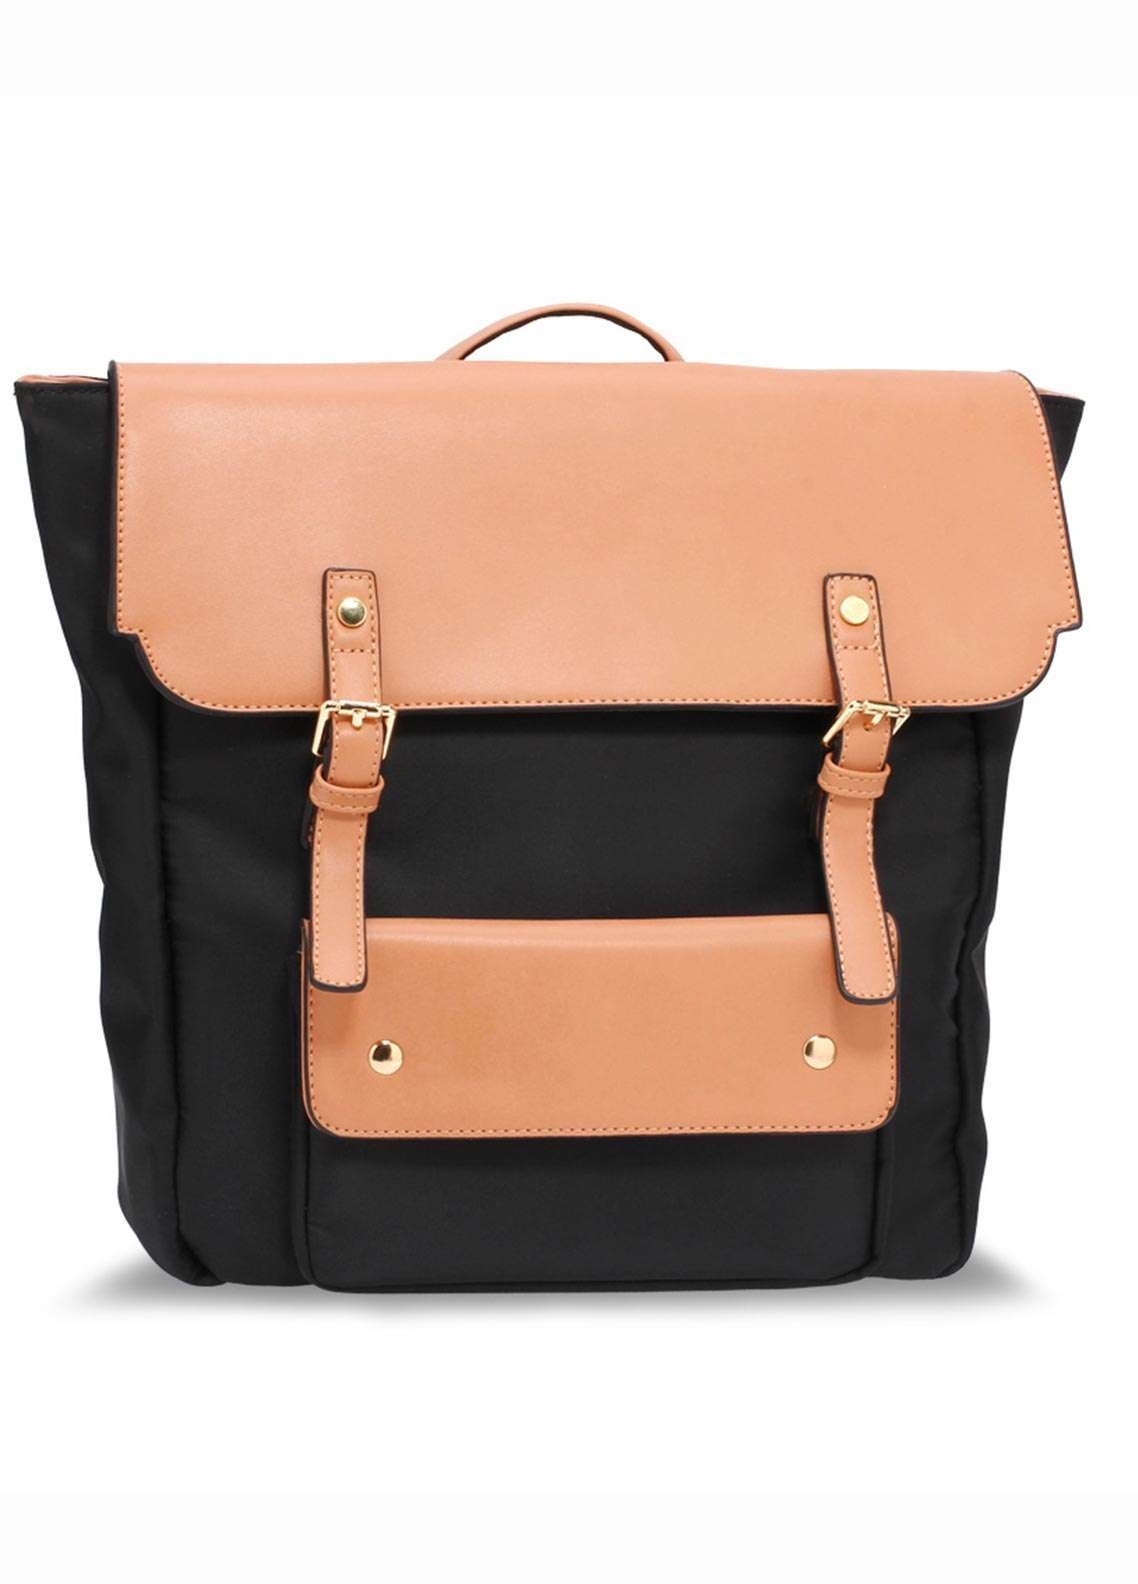 Anna Grace London Faux Leather Backpack Bags  for Women  Nude with Smooth Texture